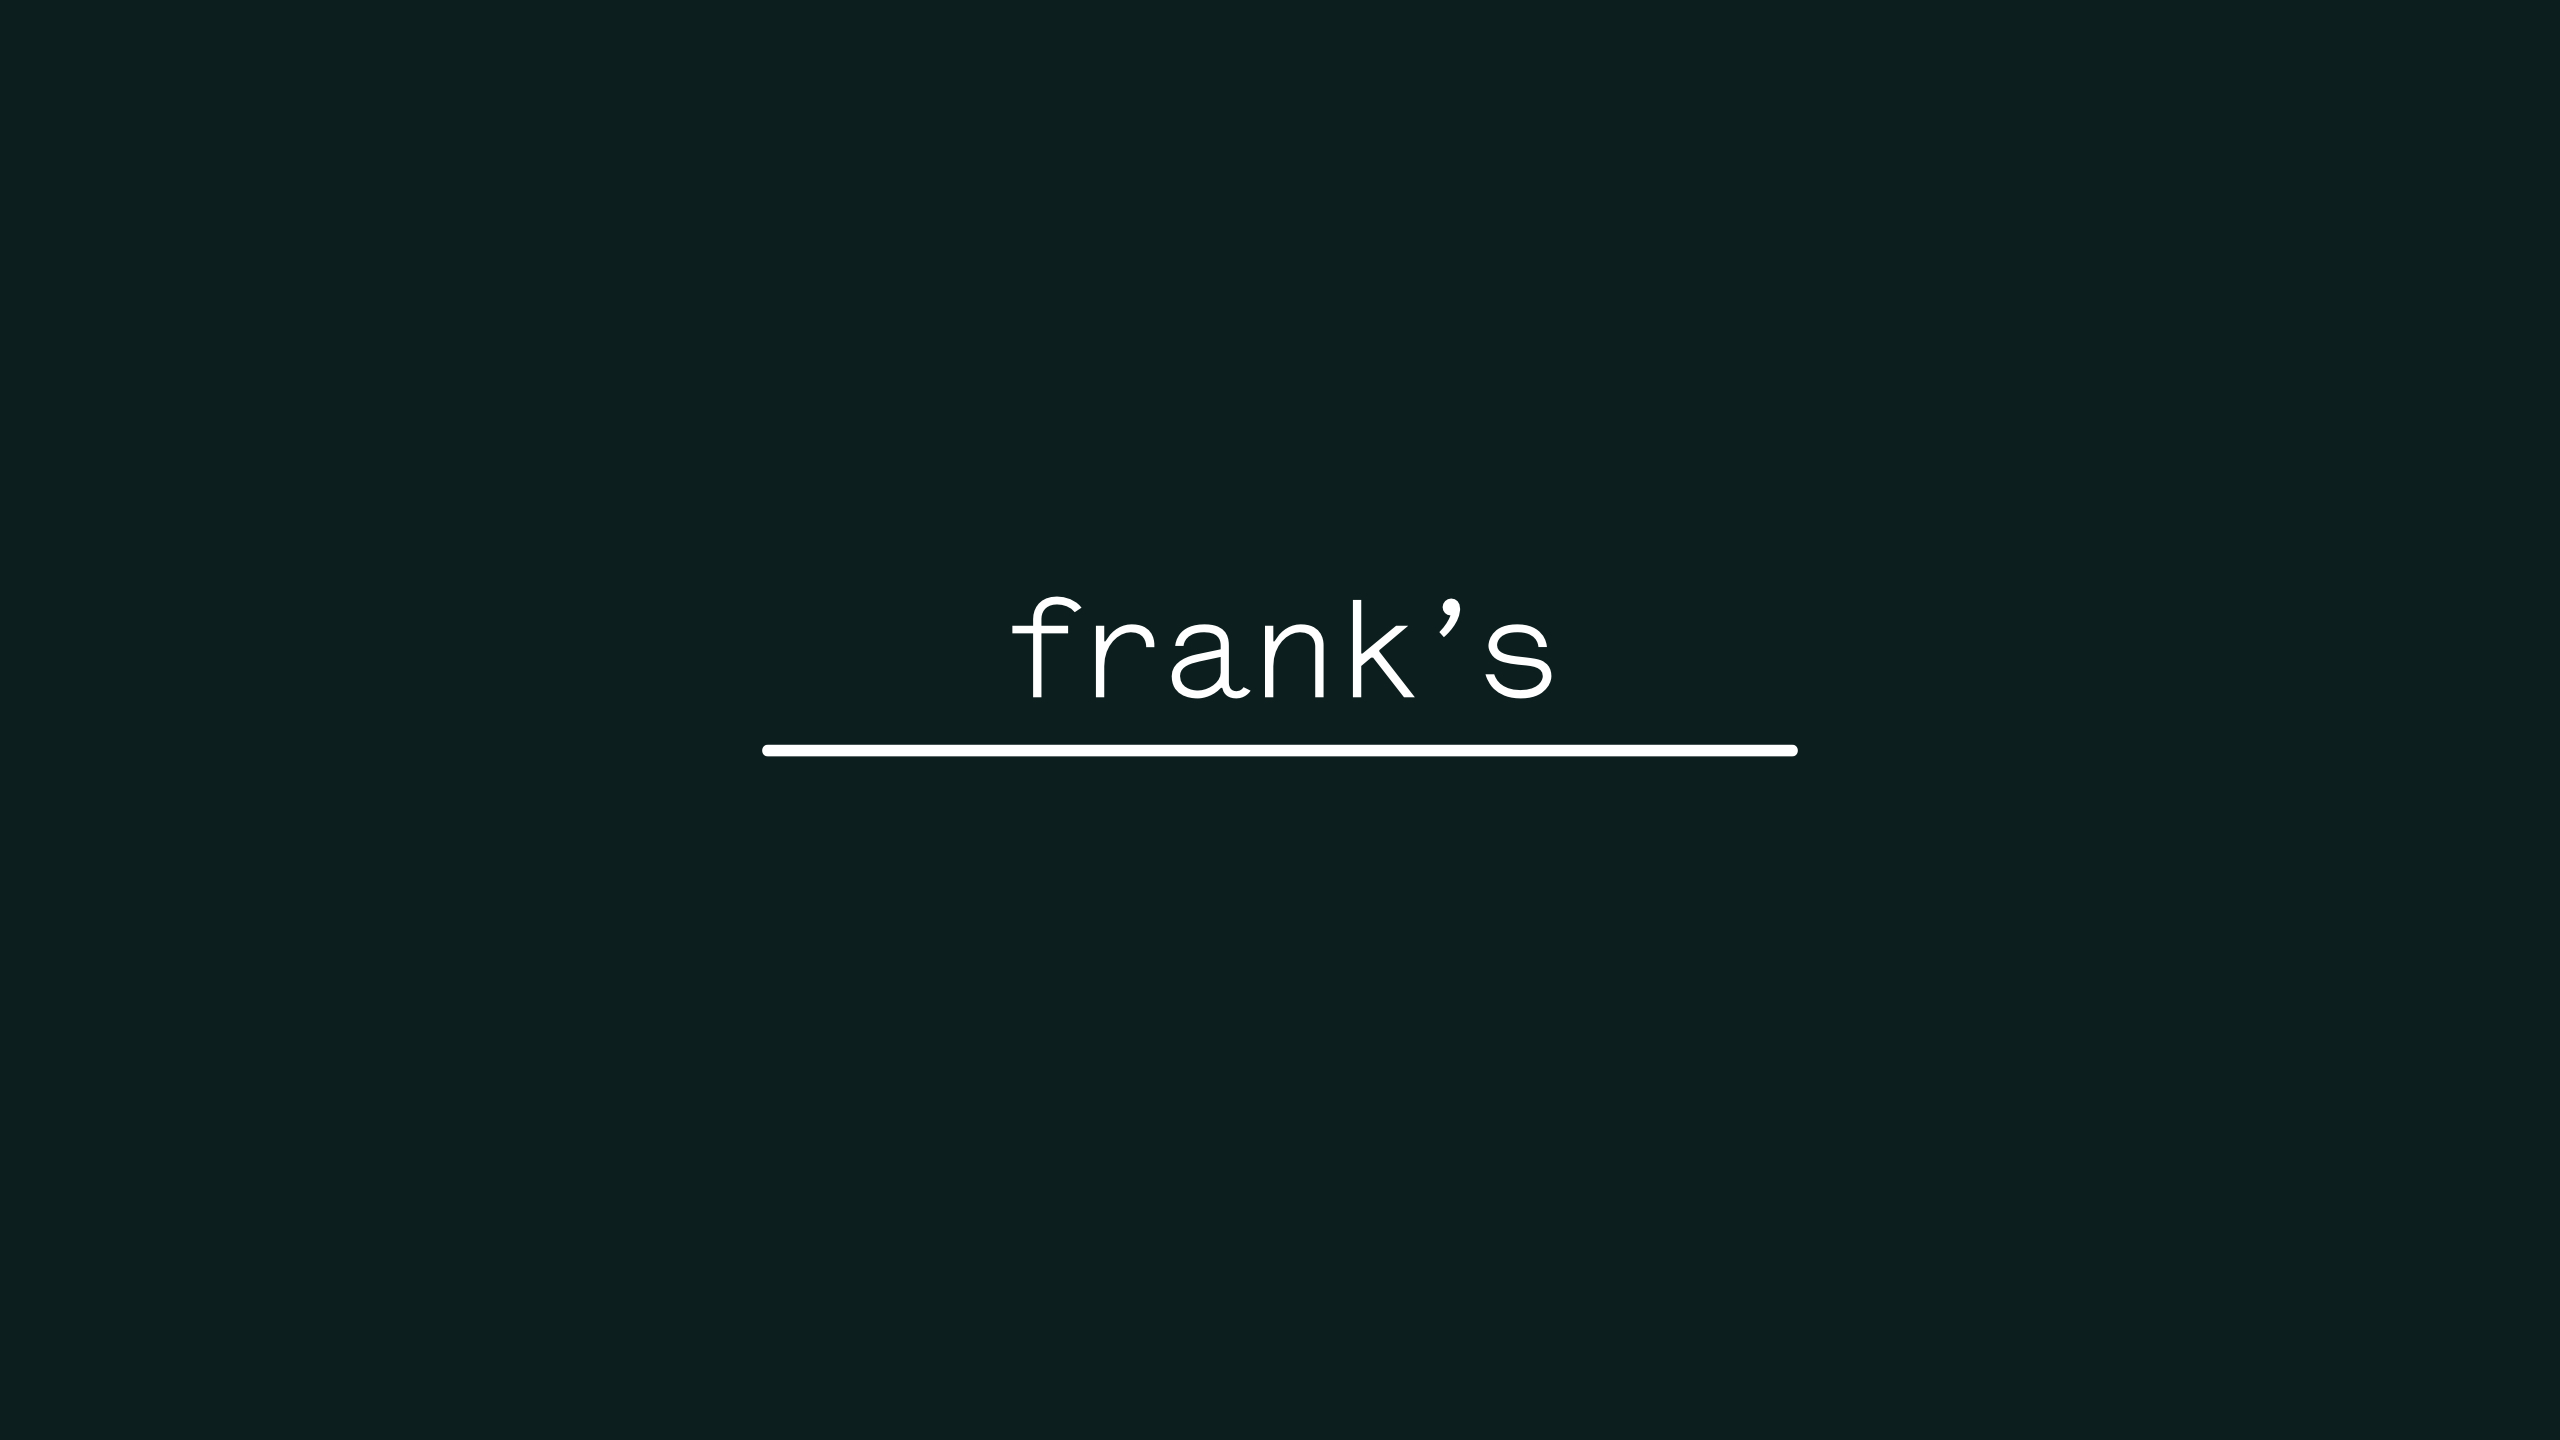 Cover image: Frank's